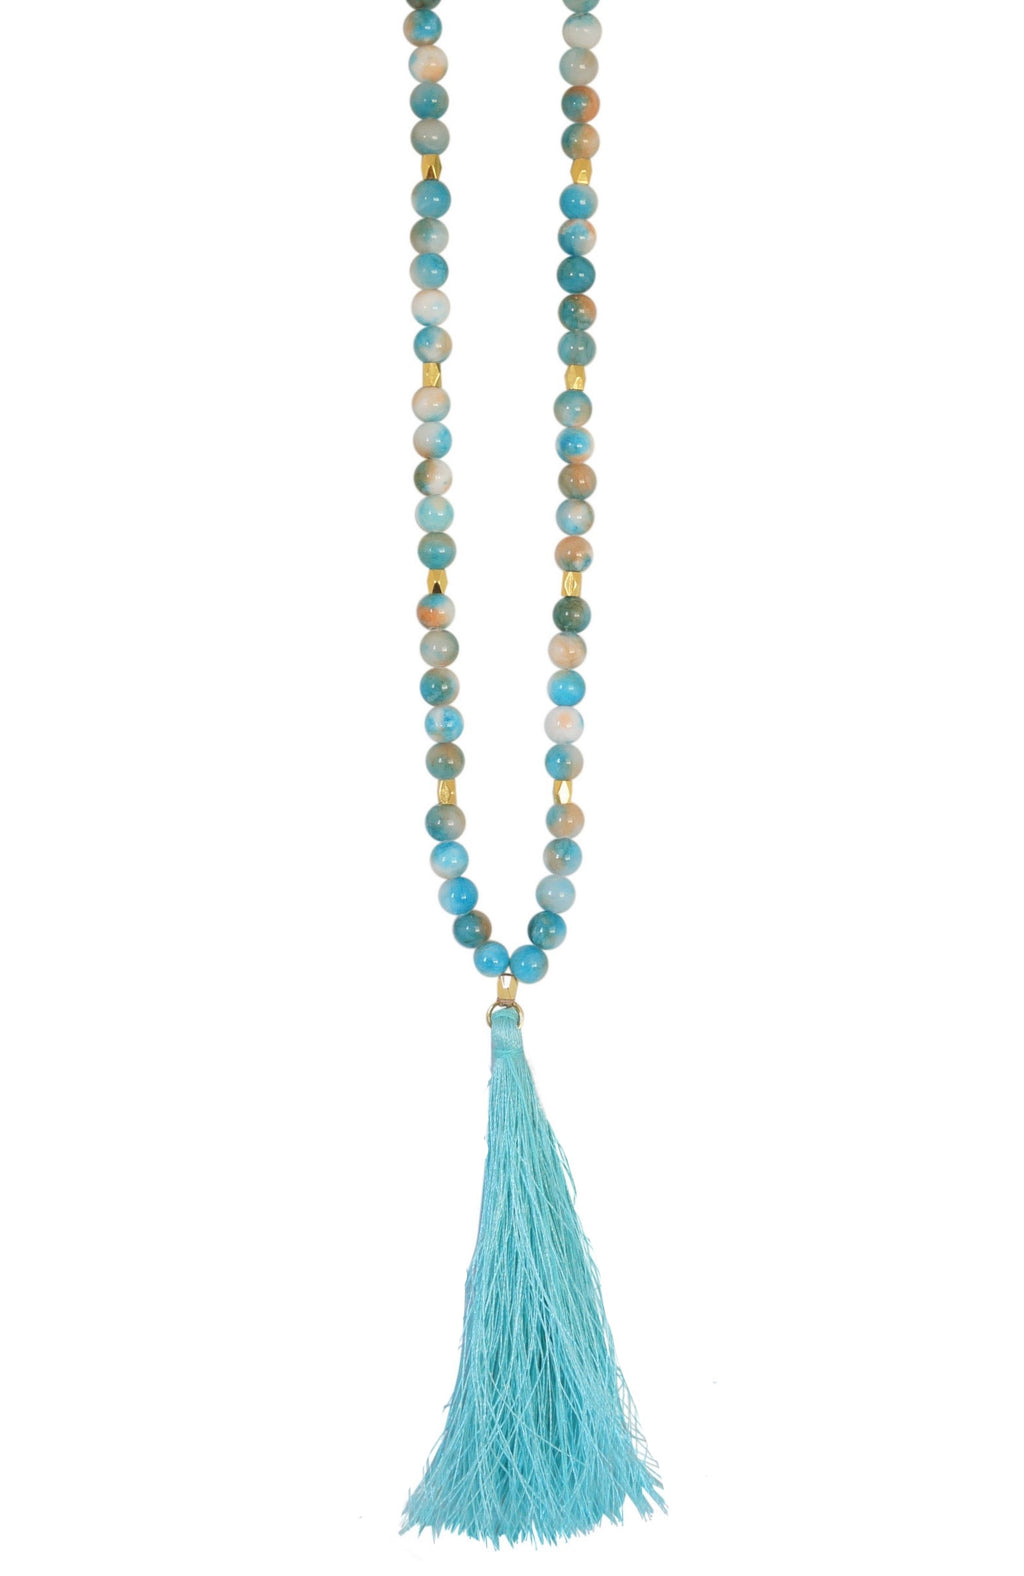 Invigorating Necklace - Carolyn Hearn Designs